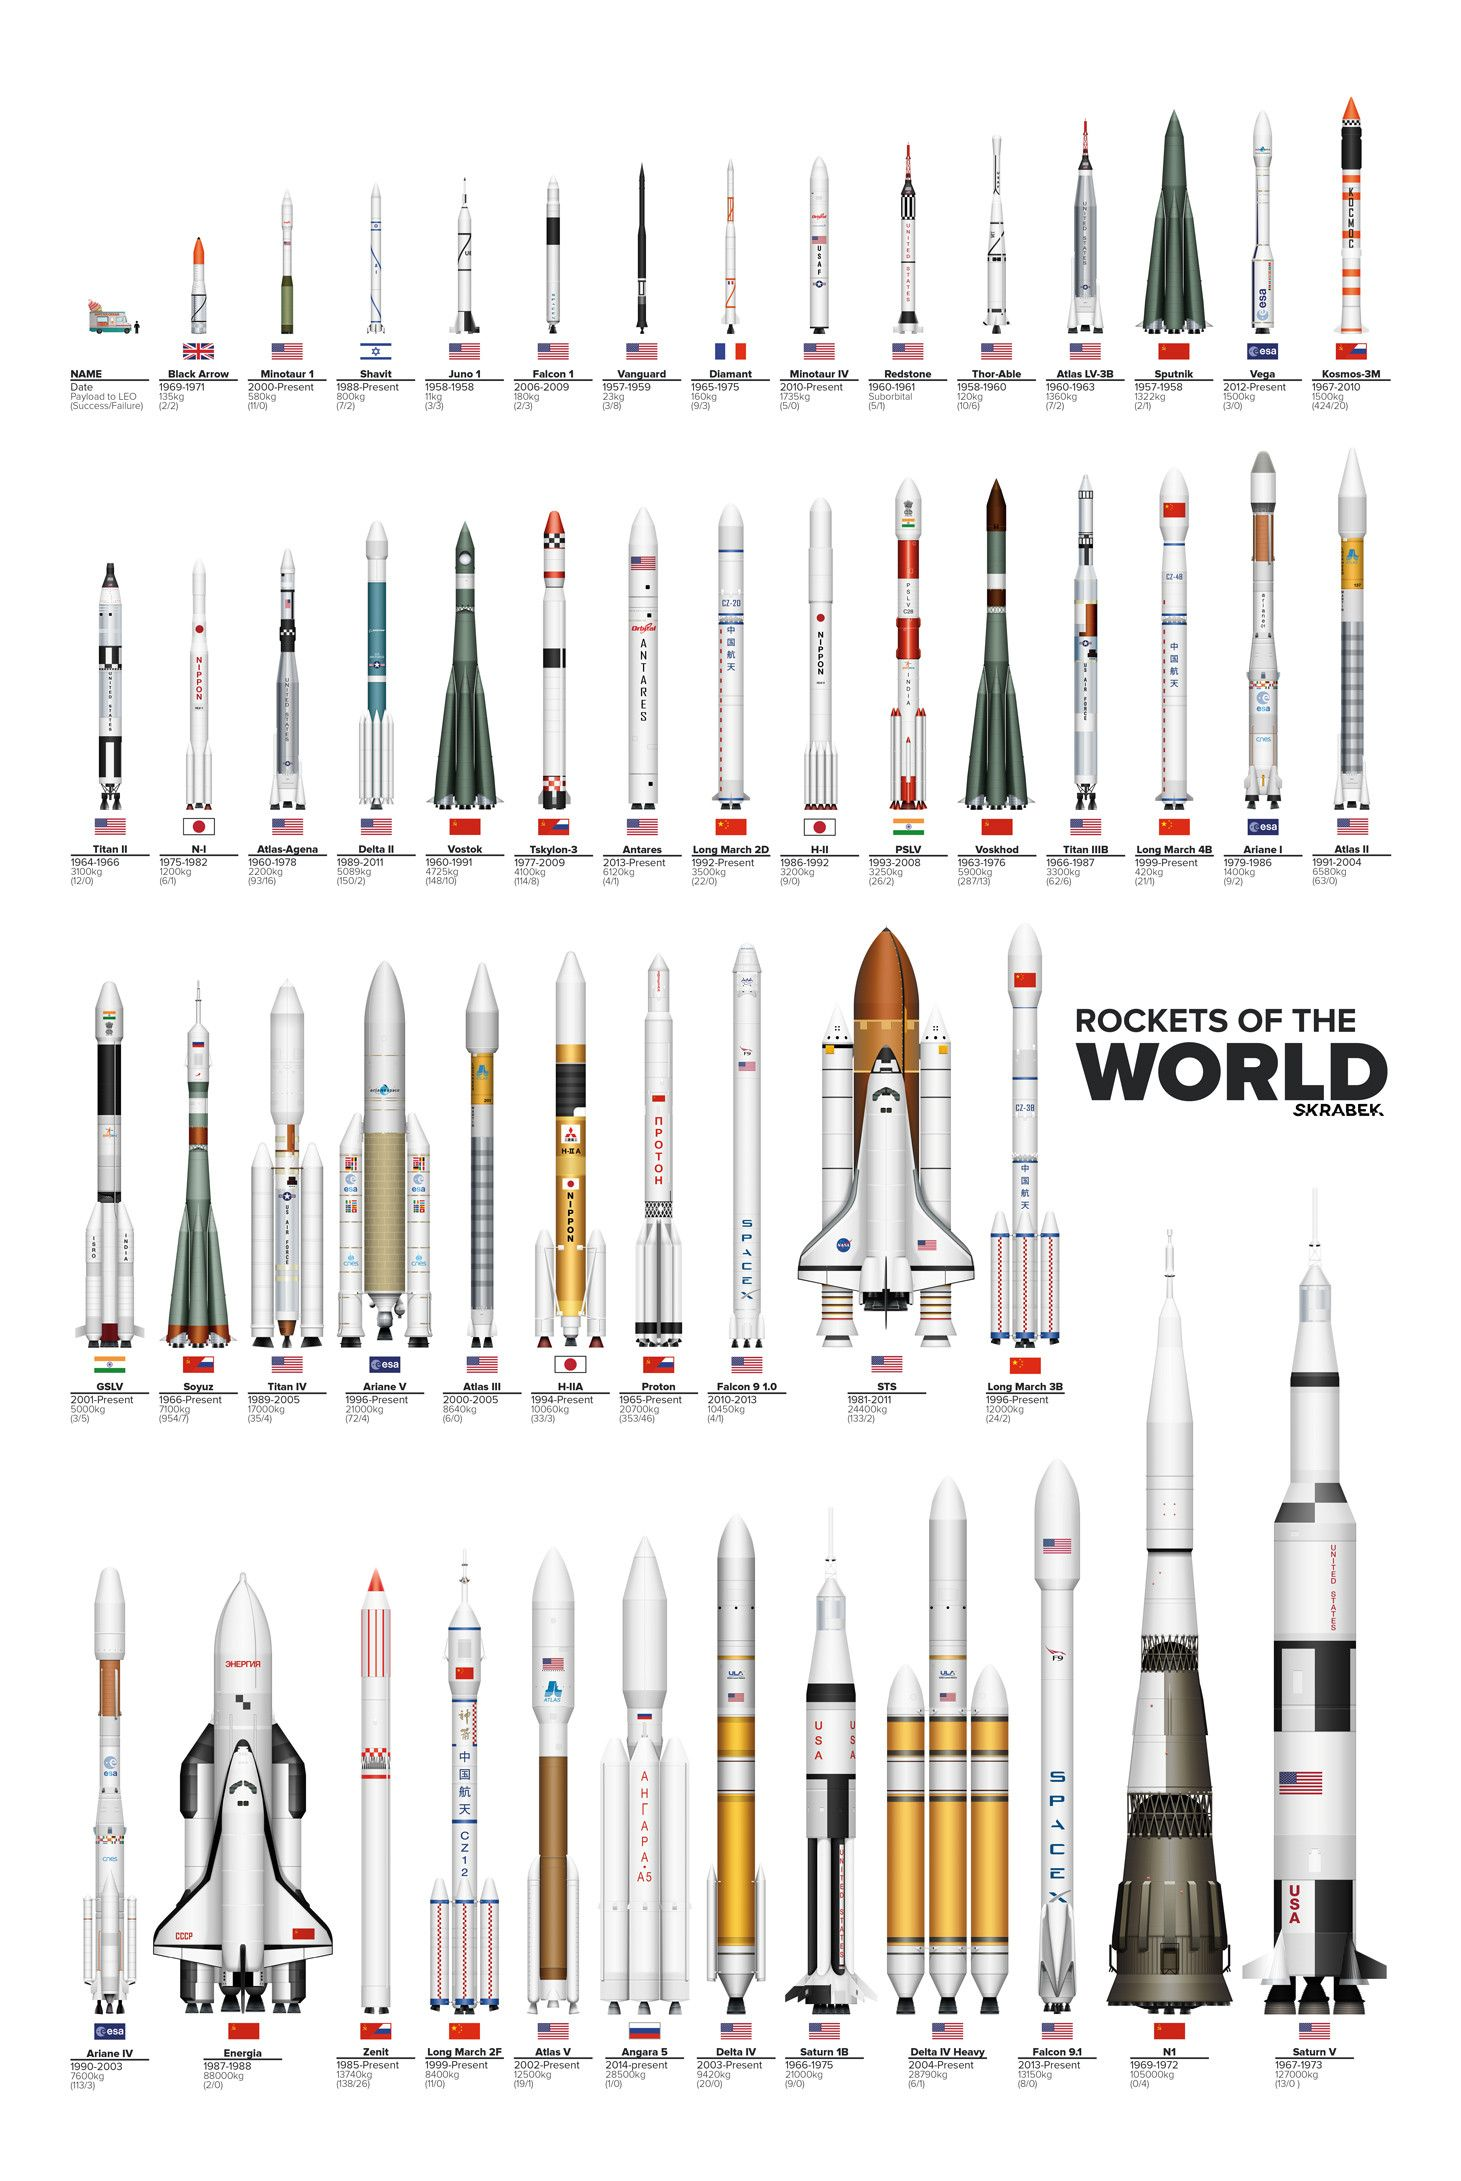 'rockets of the world' compares them from smallest to largest